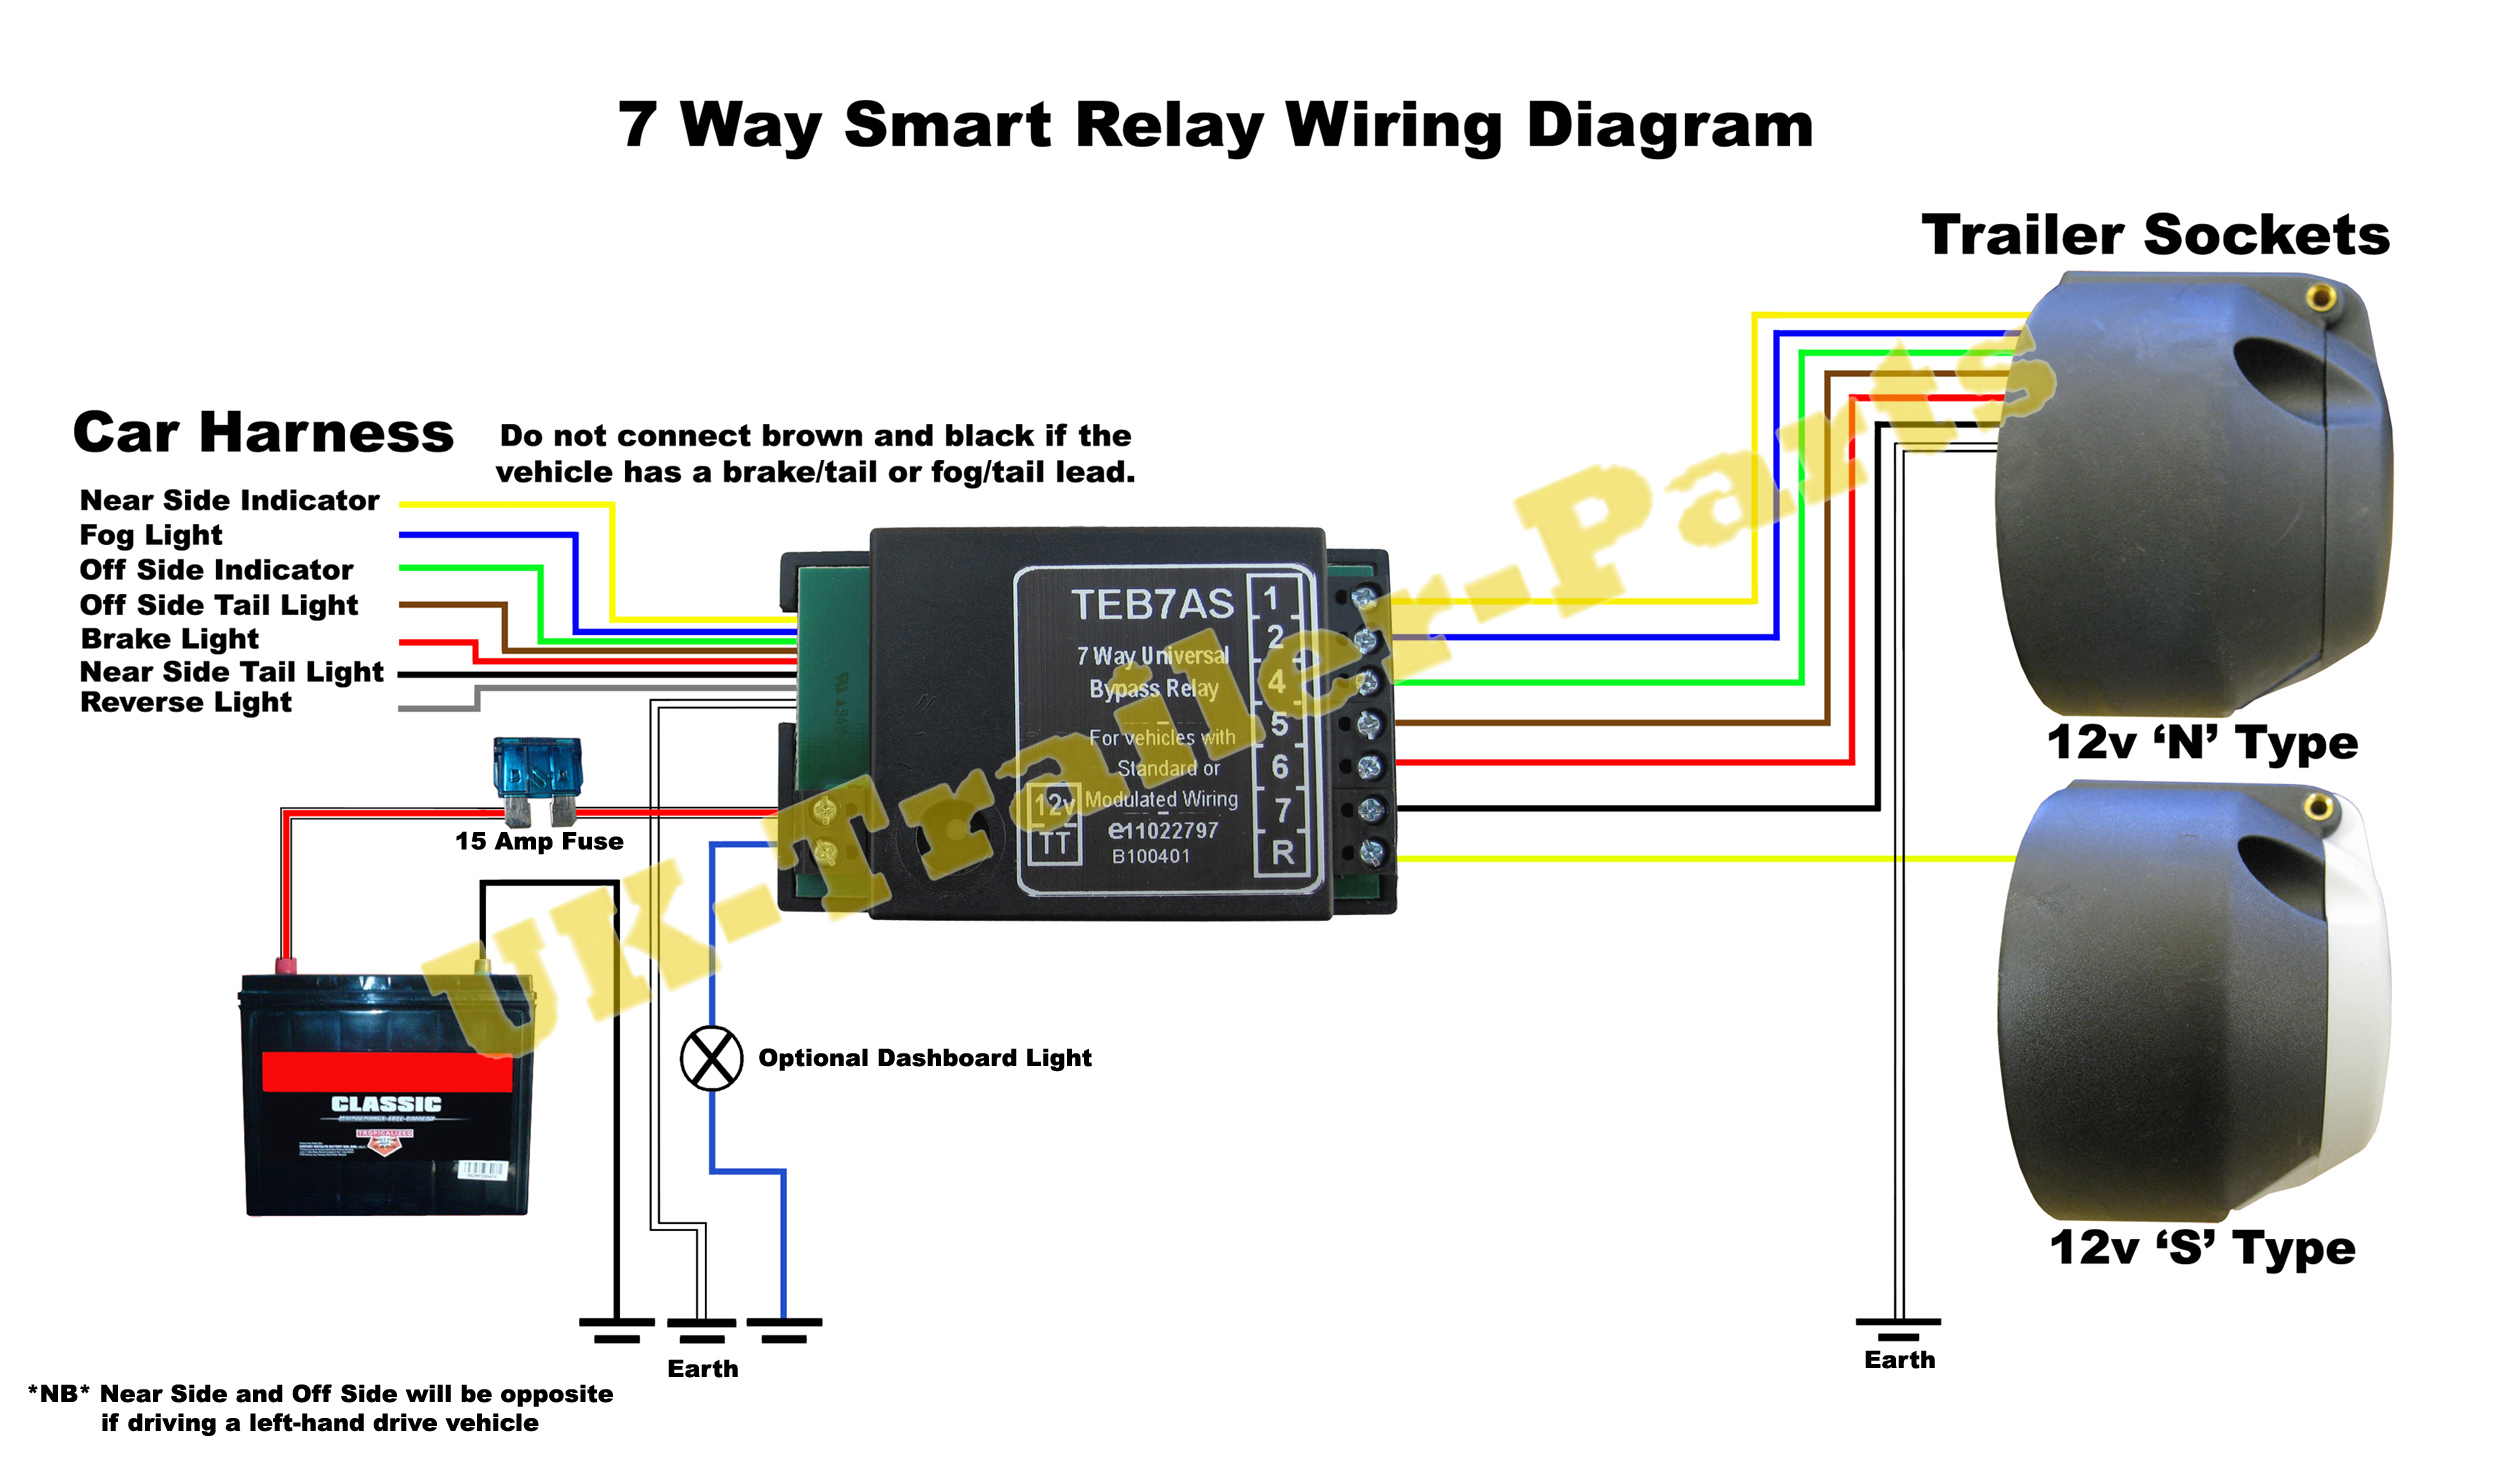 7 way universal bypass relay wiring diagram uk trailer parts rh uk trailer parts co uk 4 Pin Relay Wiring Diagram Relay Switch Wiring Diagram